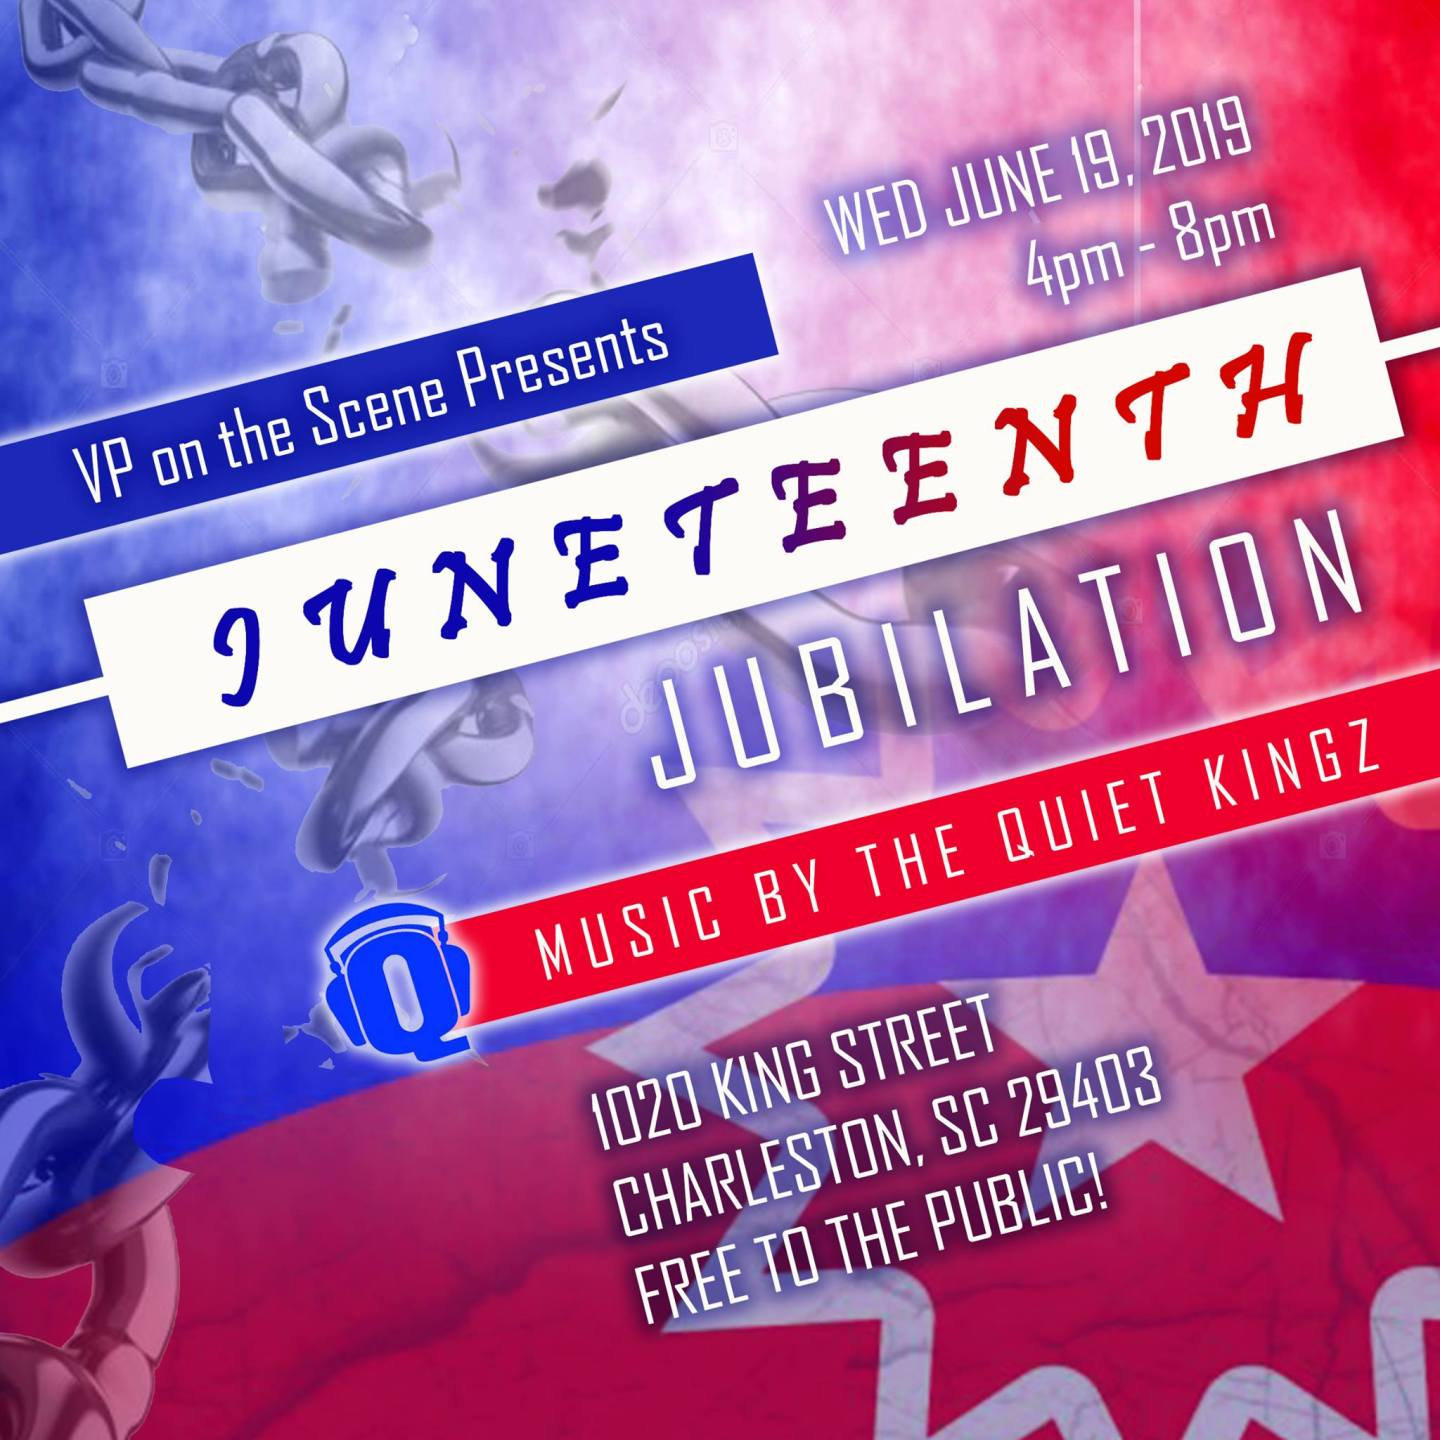 58381393_2413595188927273_3874827049575120896_o Celebrating Juneteenth in South Carolina: Events to Attend this June